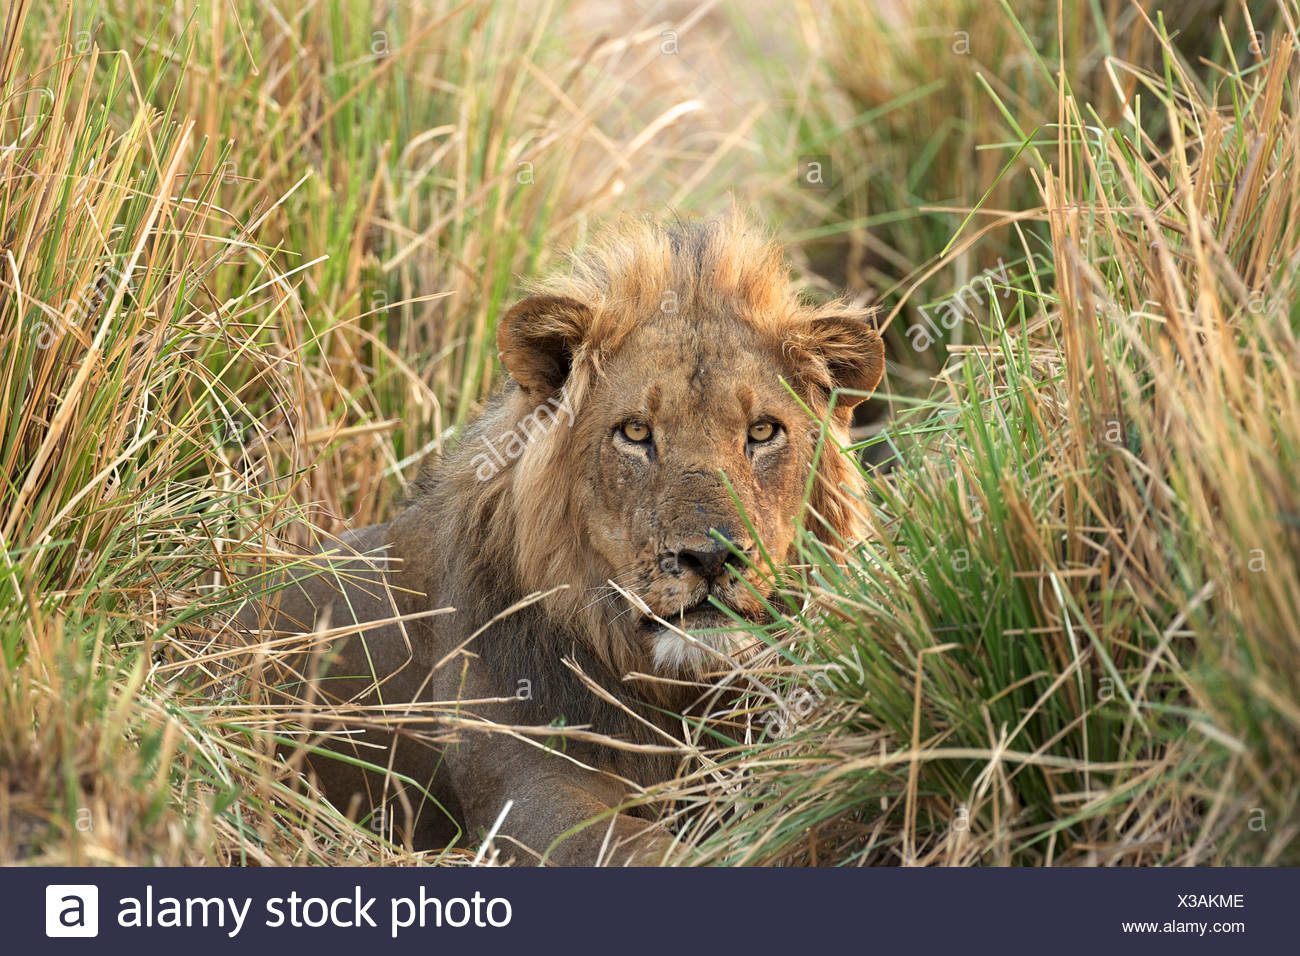 Male lion - Panthera leo - hiding in adrenaline grass, Mana Pools National Park, Zimbabwe, Africa - Stock Image